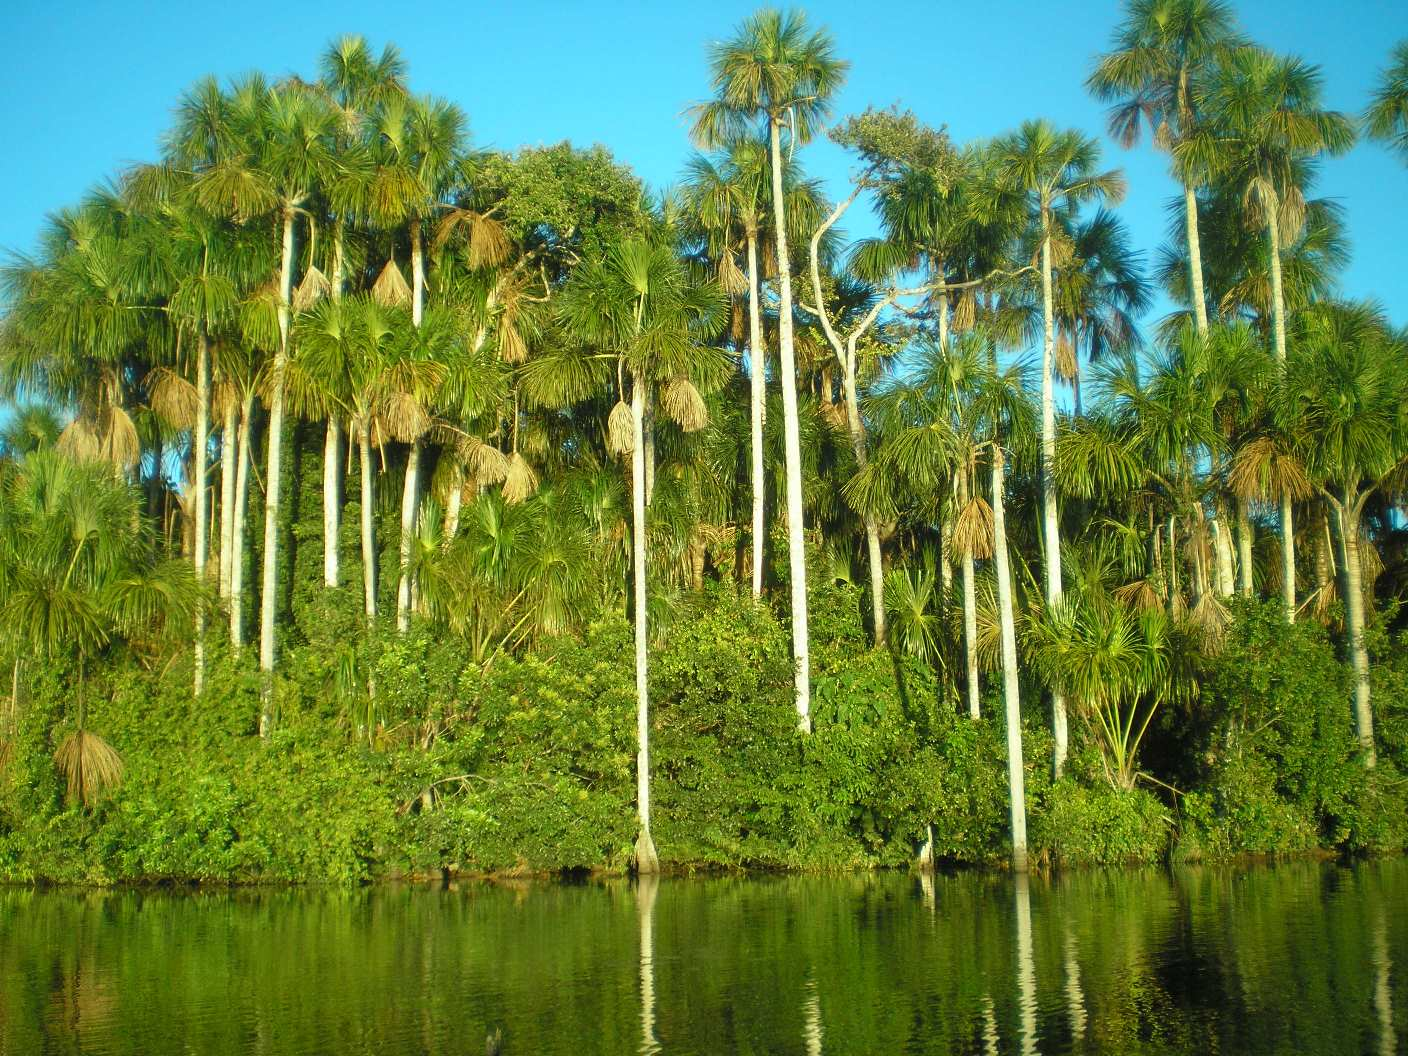 Intact palm swamp along a rainforest lake in southeastern Peru. Miners seek gold in the sediments, cutting trees and inputting harmful mercury into waters to identify the tiny gold pieces in the soil.